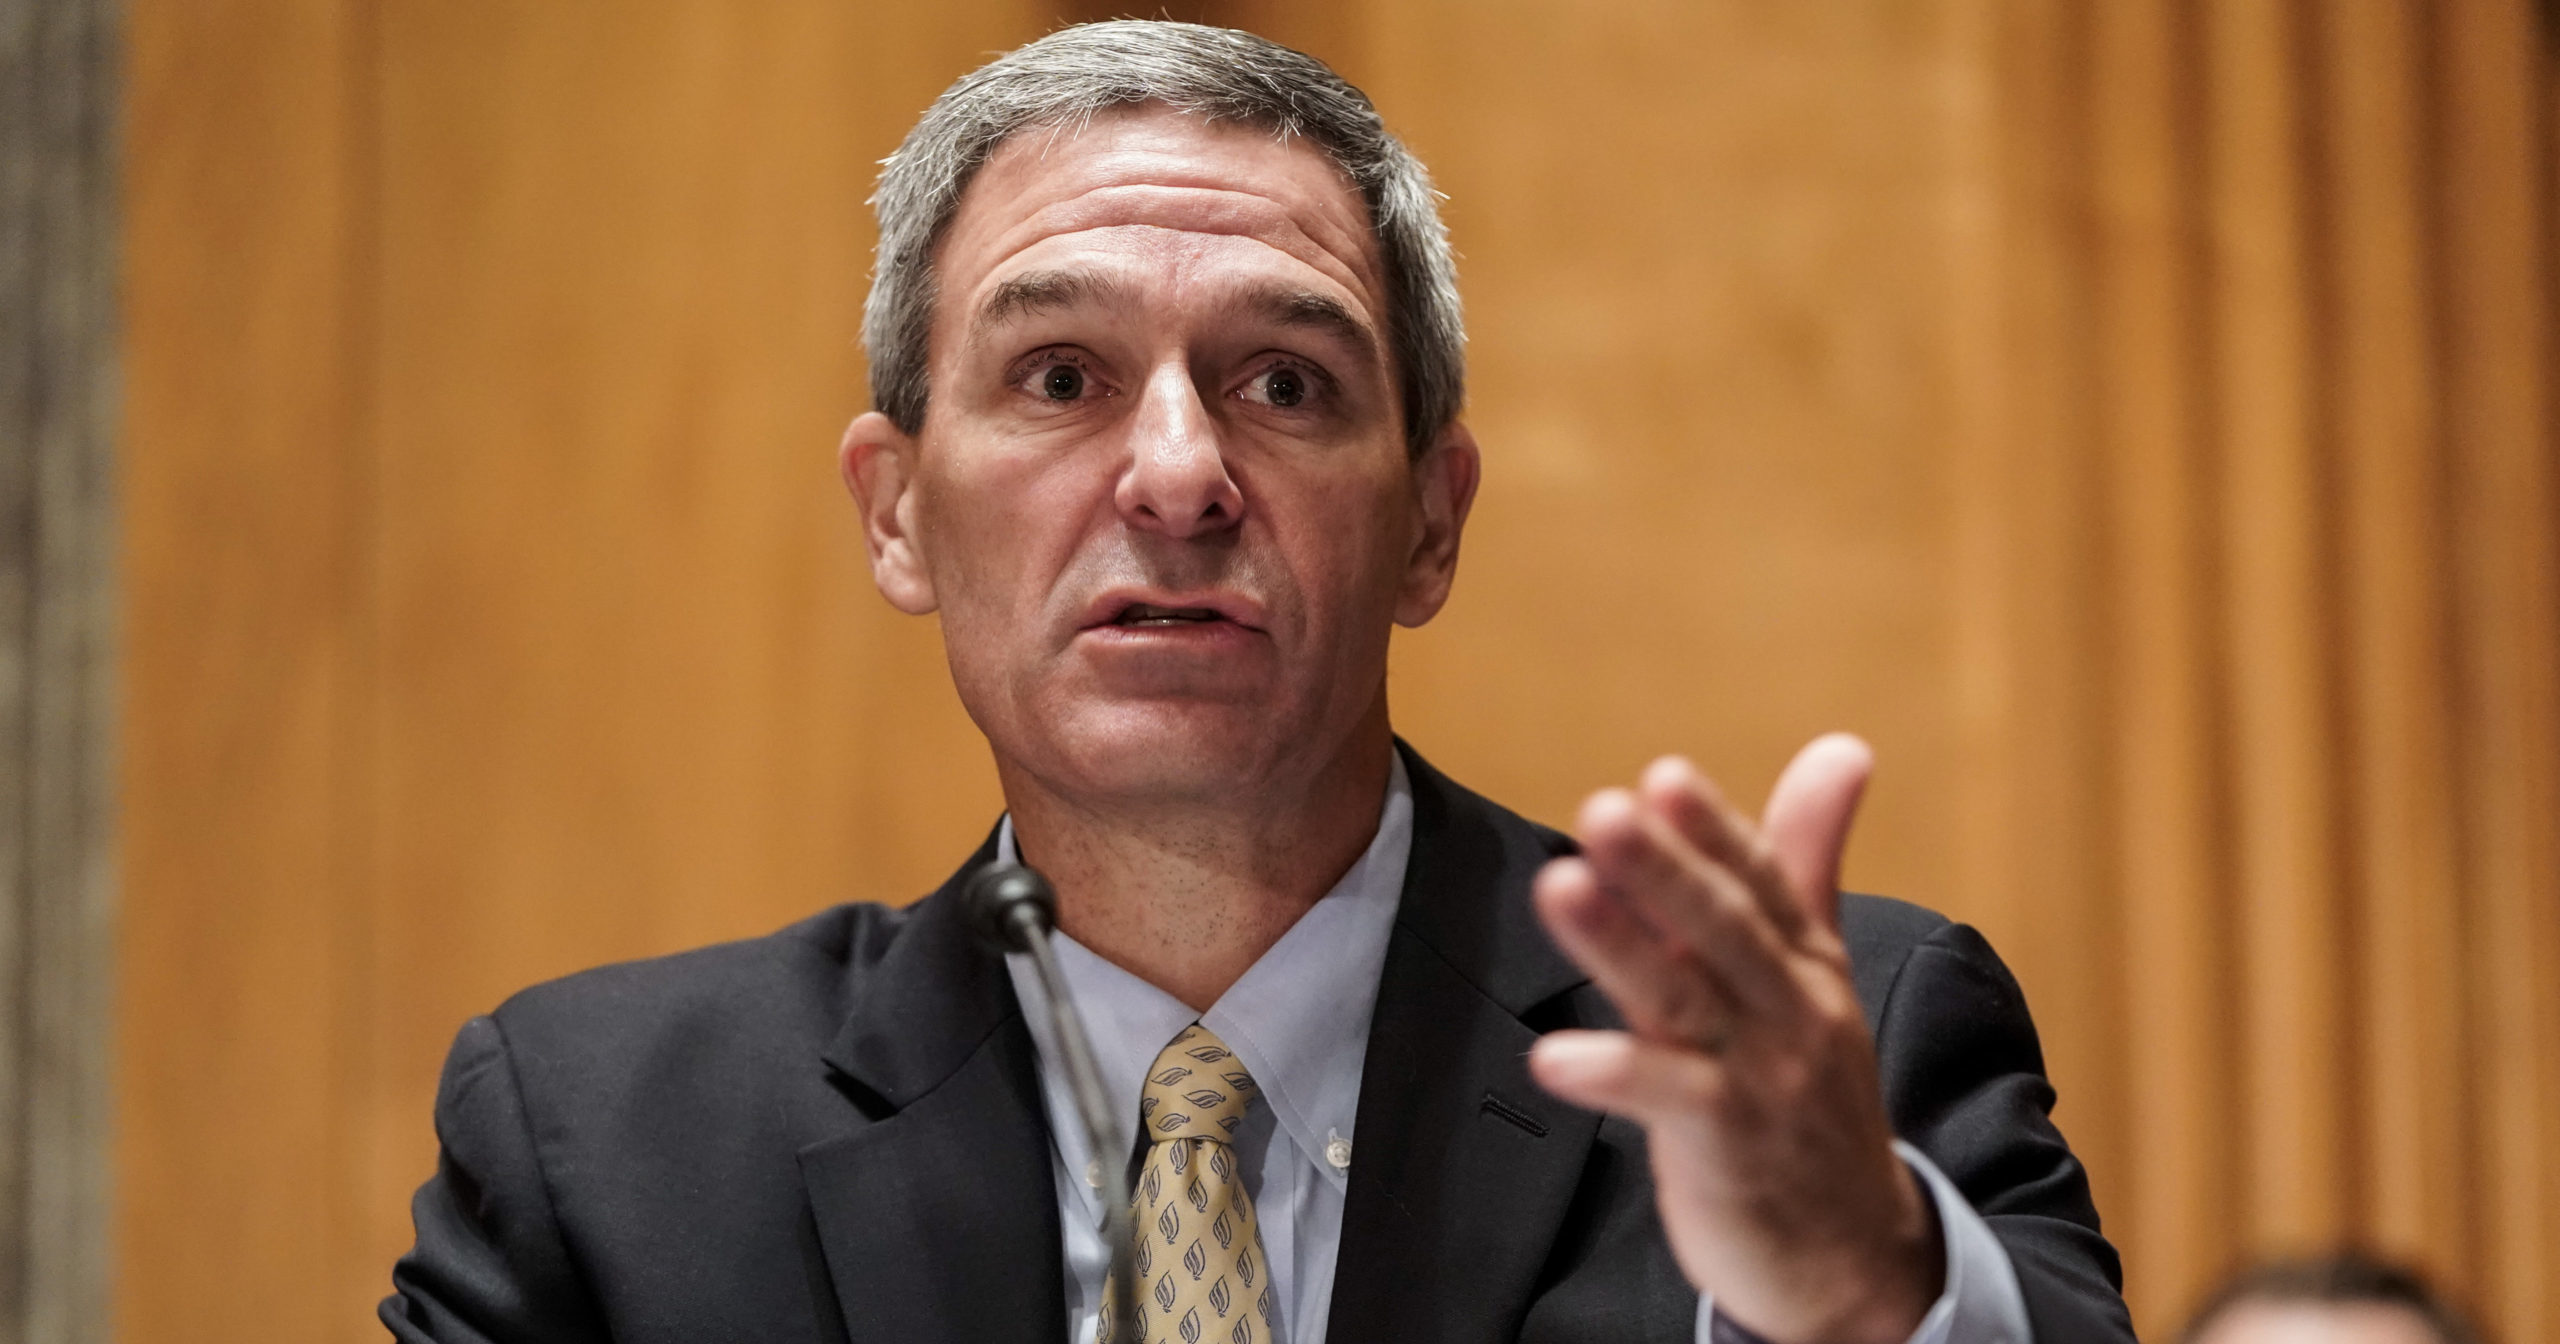 Department of Homeland Security Acting Deputy Secretary Ken Cuccinelli testifies during a Senate Homeland Security and Governmental Affairs Committee hearing on Sept. 24, 2020, on Capitol Hill in Washington, D.C.